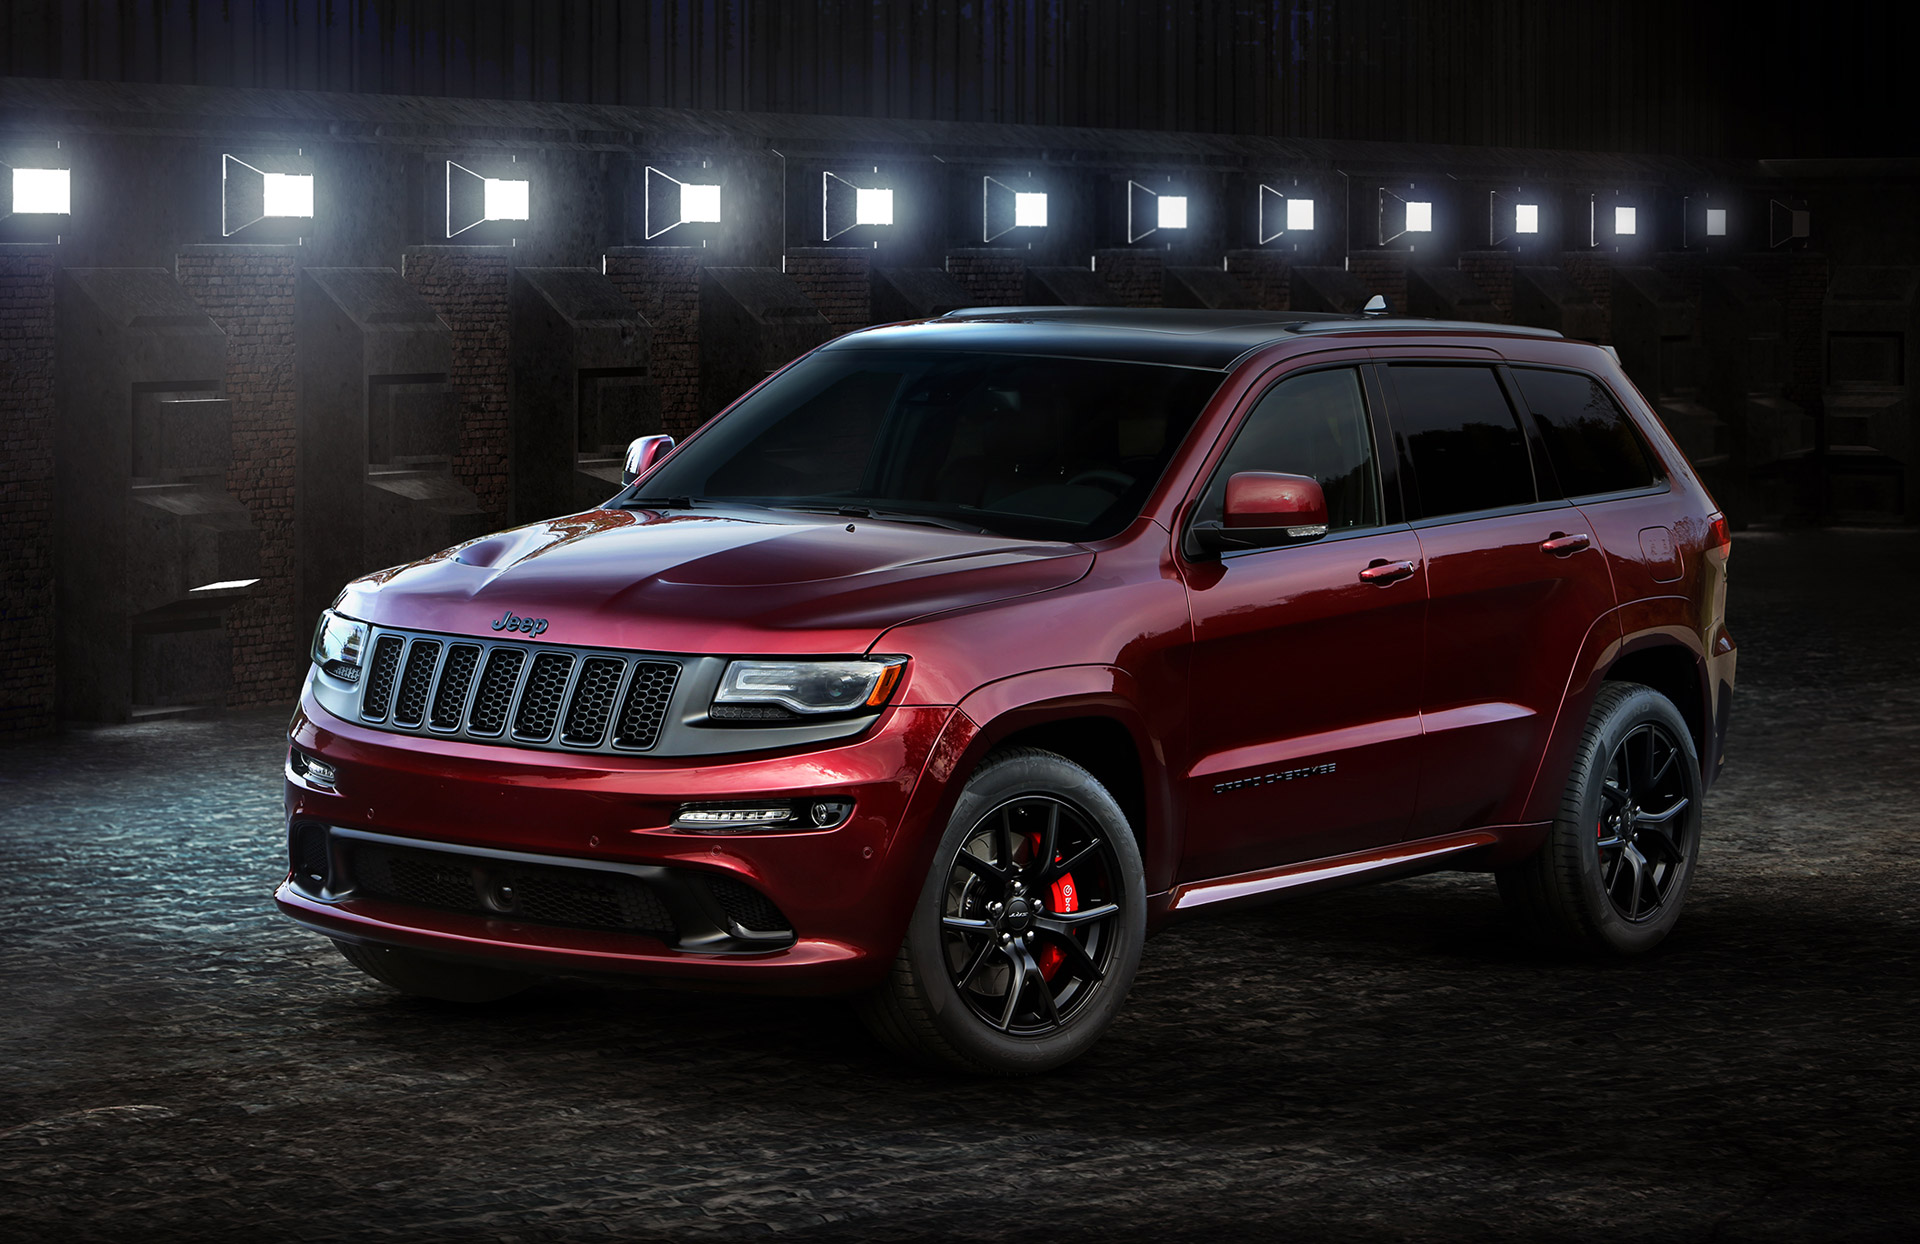 2016 jeep grand cherokee srt wrangler special editions. Black Bedroom Furniture Sets. Home Design Ideas